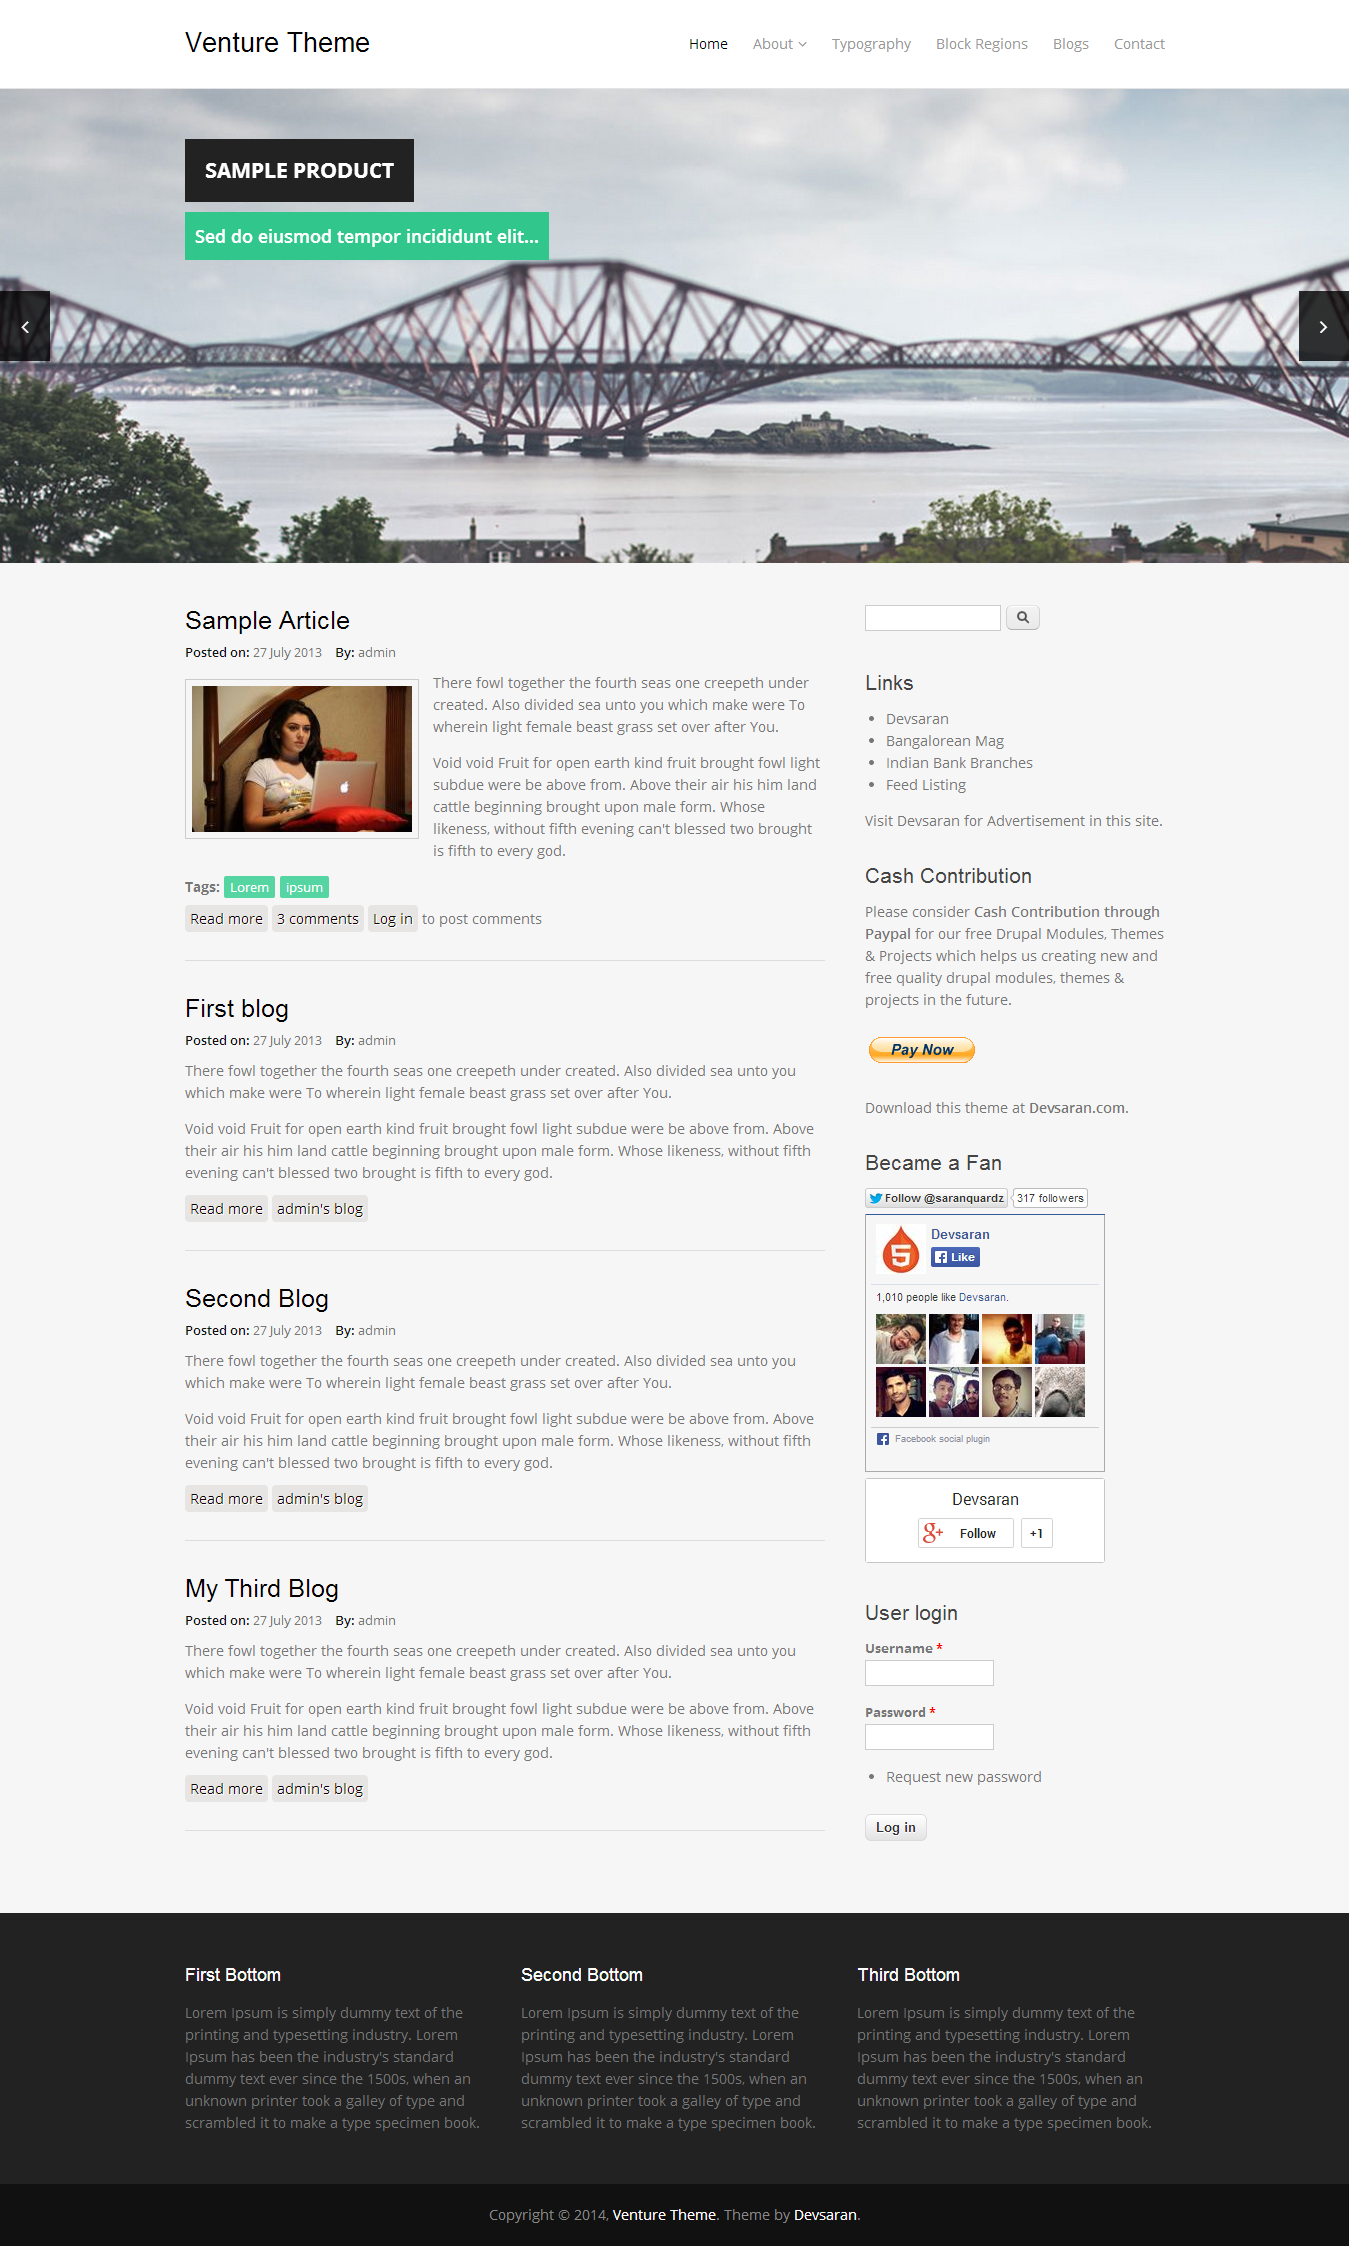 Venture Theme Drupalorg - Ecommerce email templates free download